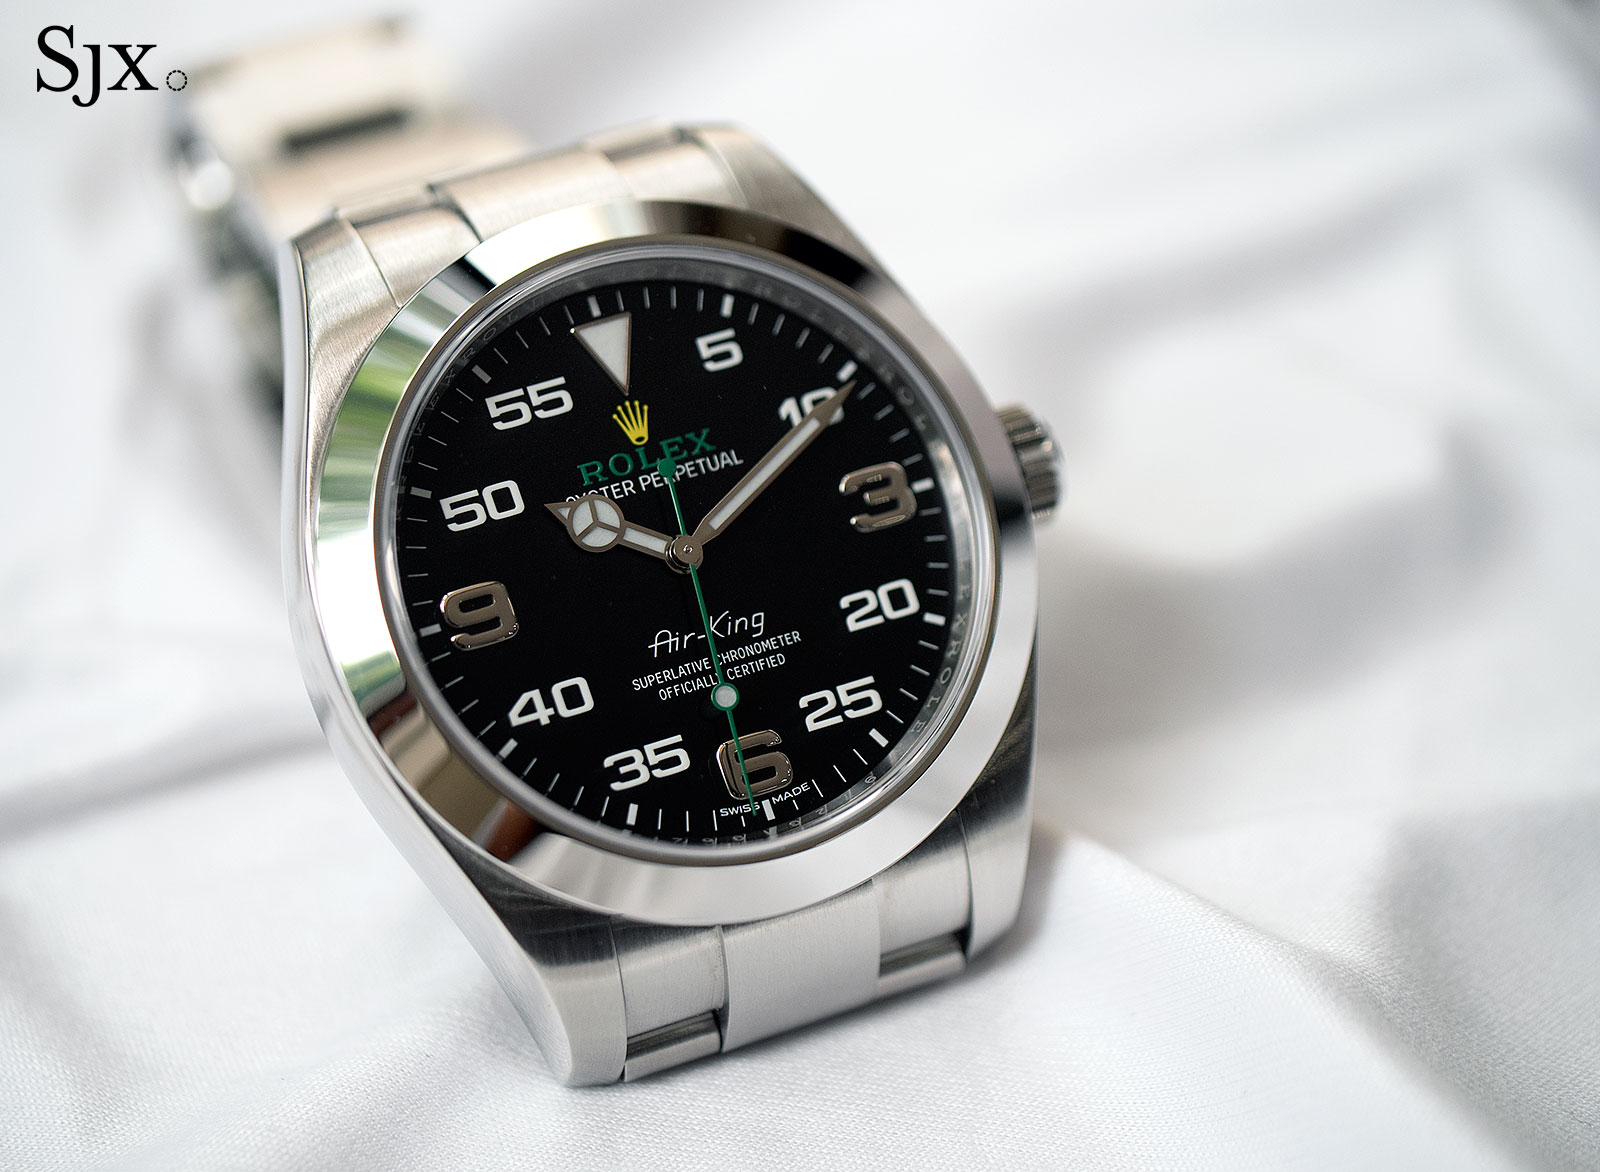 Hands On With The Rolex Air King Which Is Pretty Cool